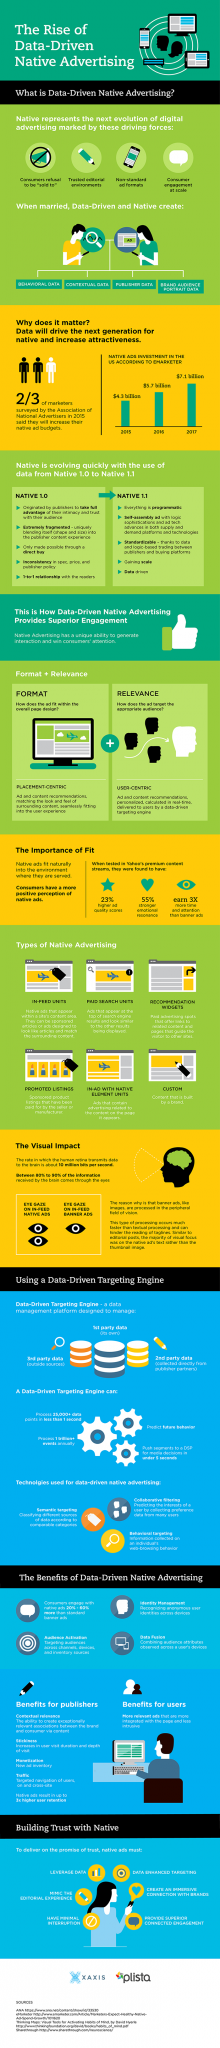 Image 2: Our new infographic shows you how the Rise of Data Driven Native Advertising can help you achieve your advertising goals.